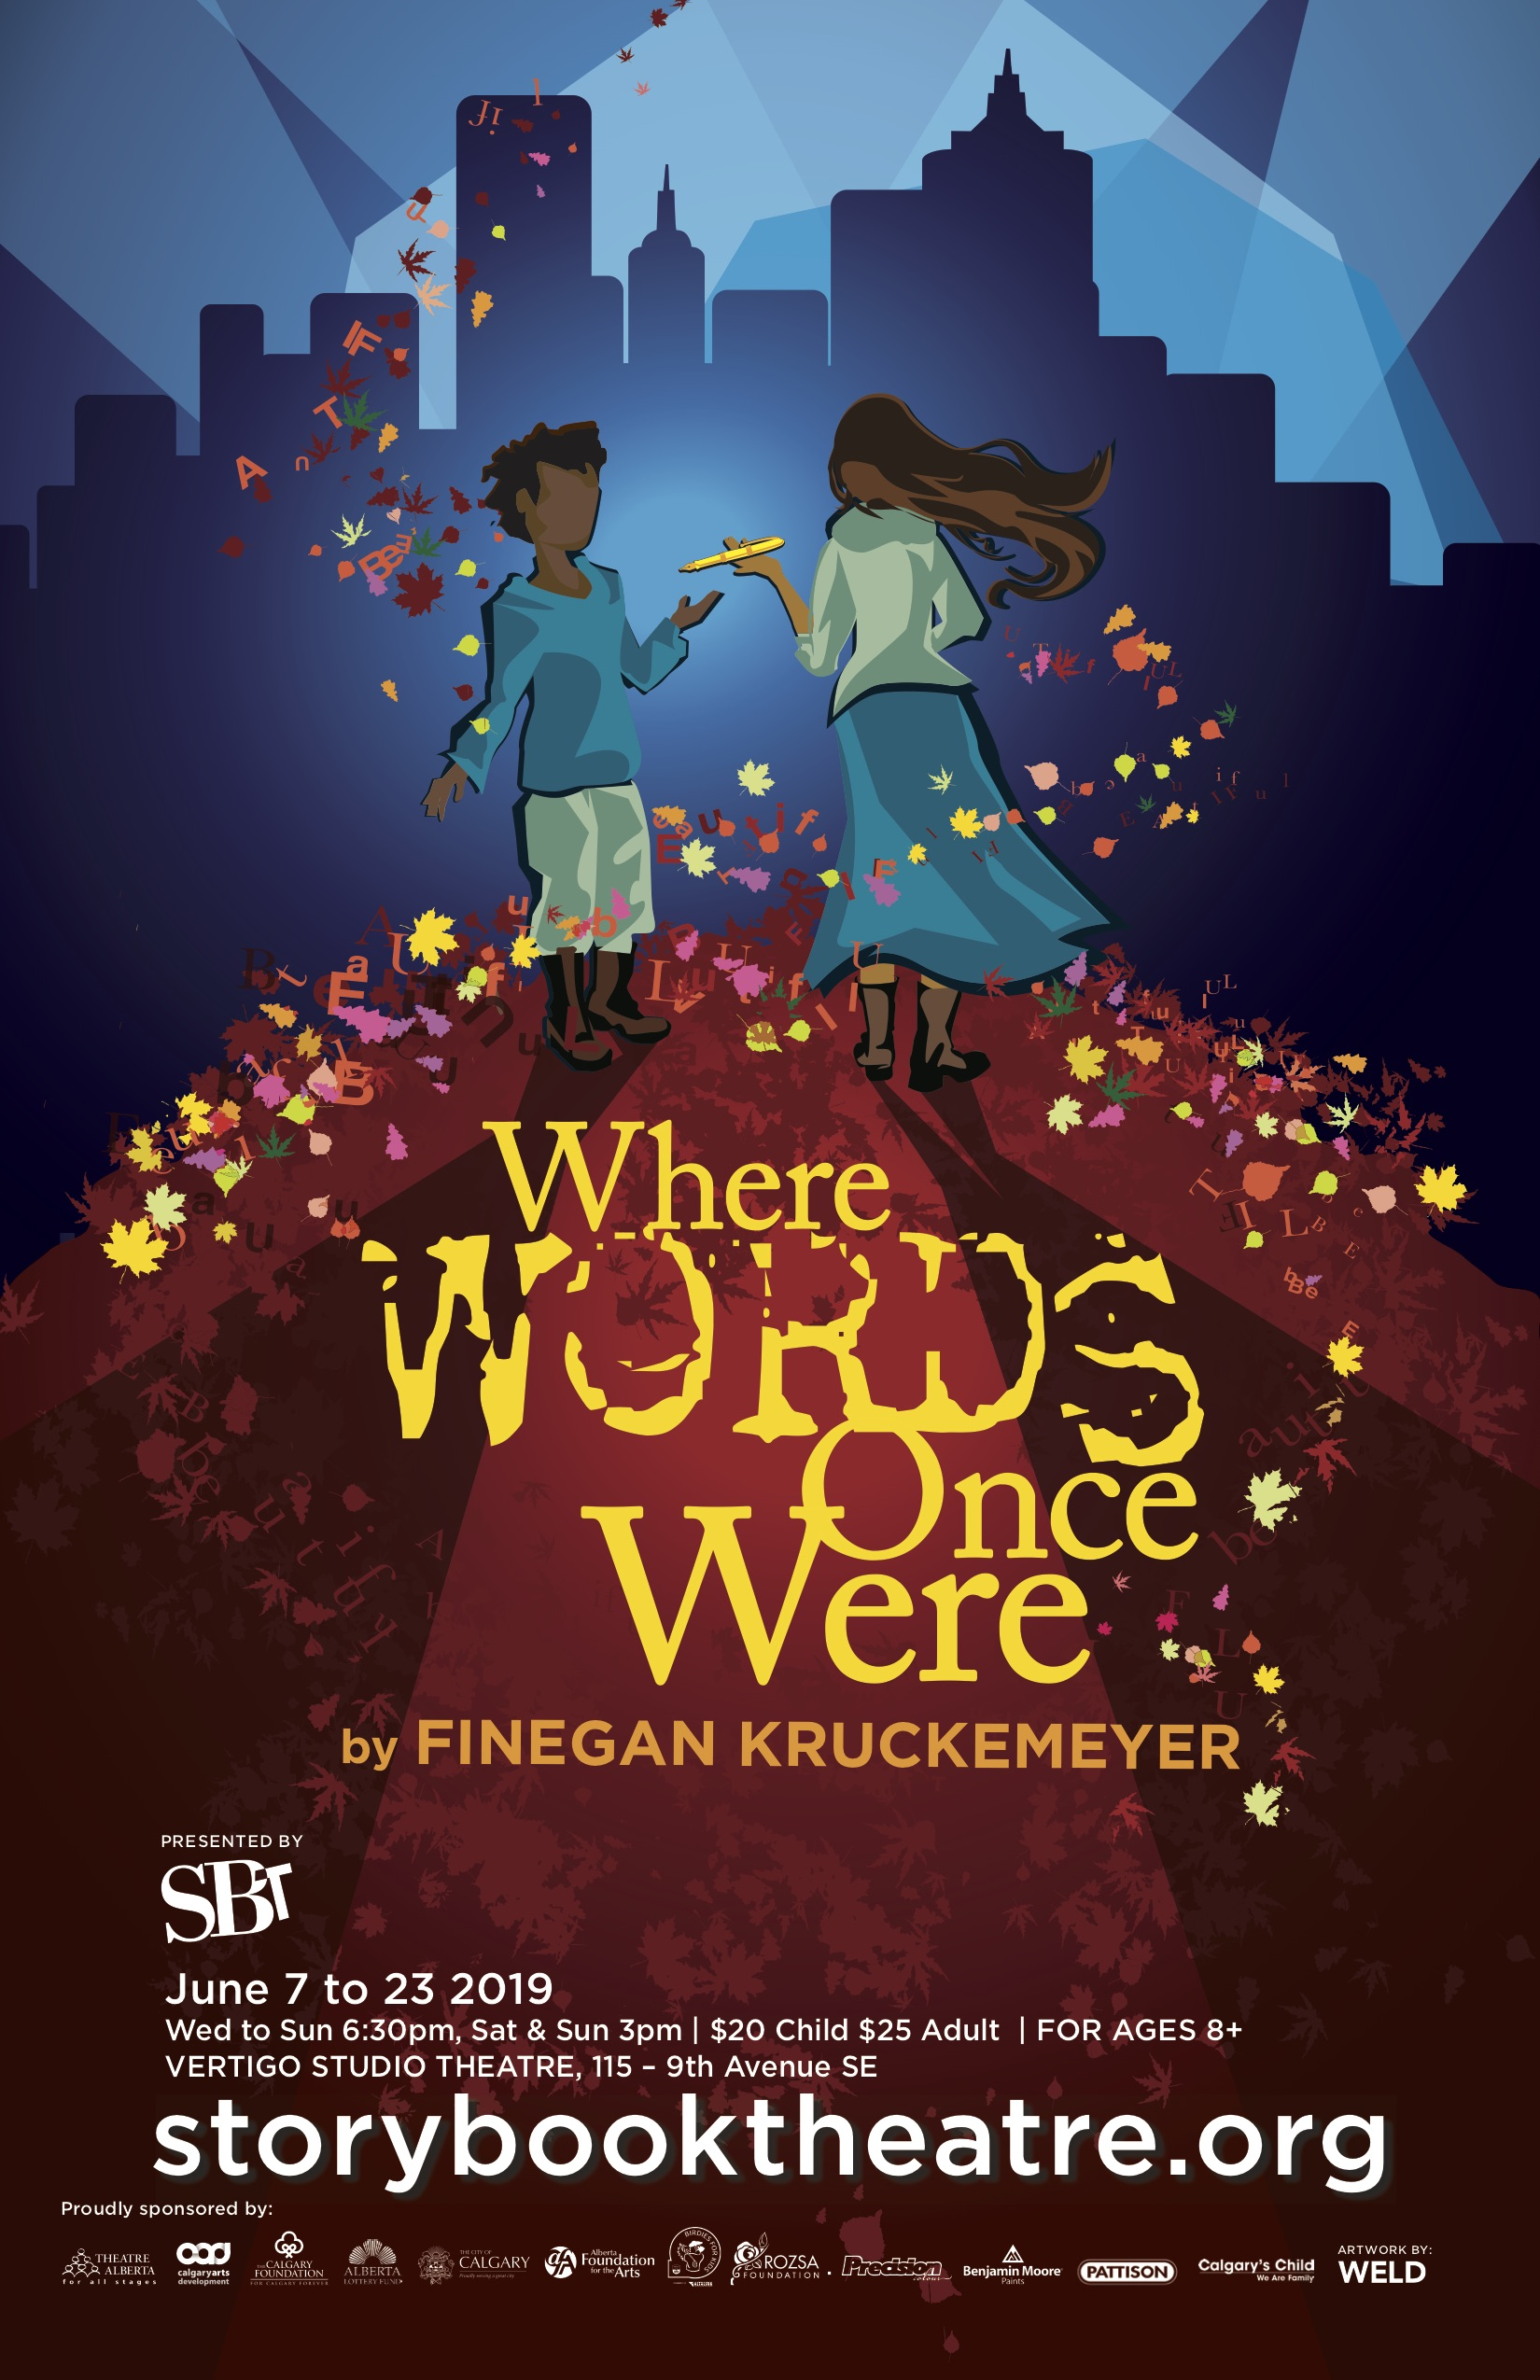 where words poster.jpg